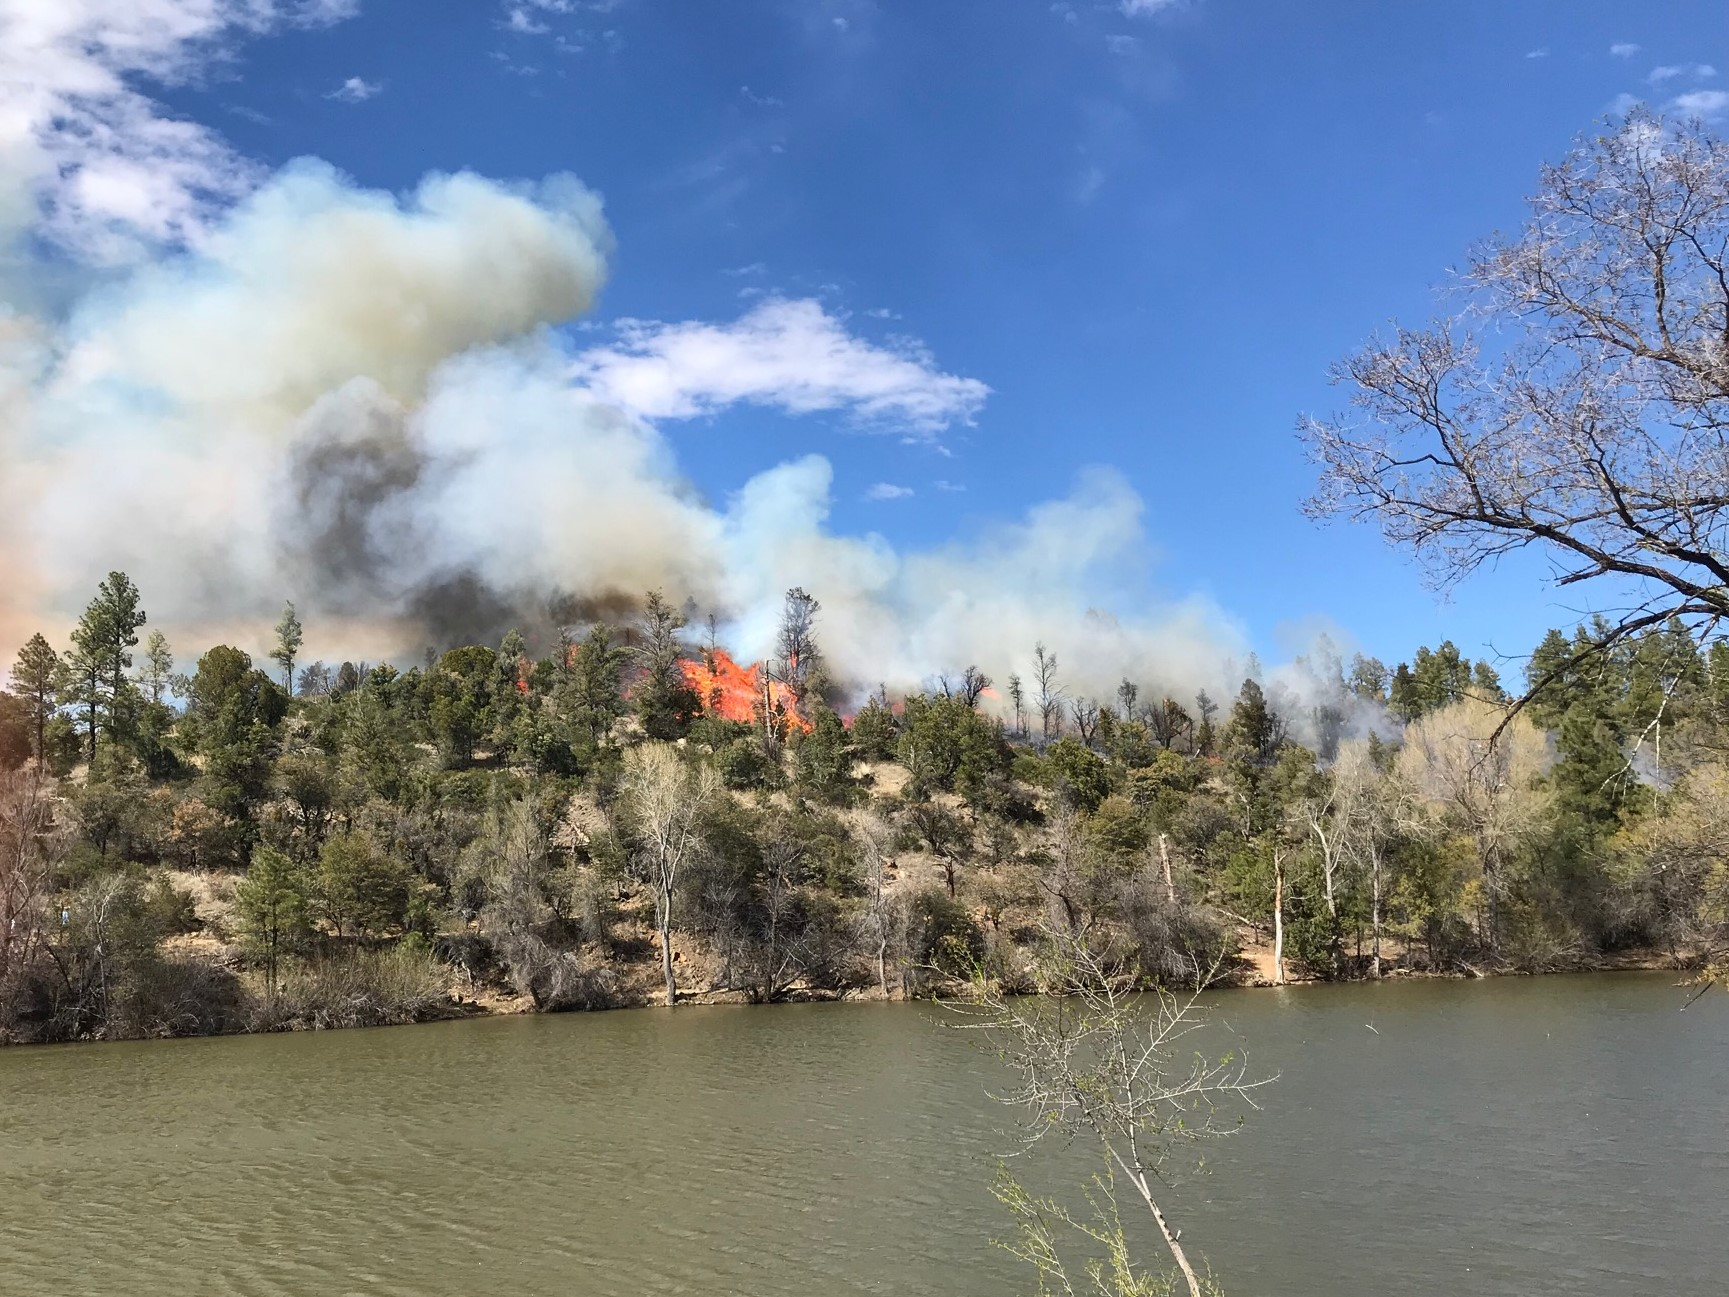 Authorities evacuate Lynx Lake area due to wildfire